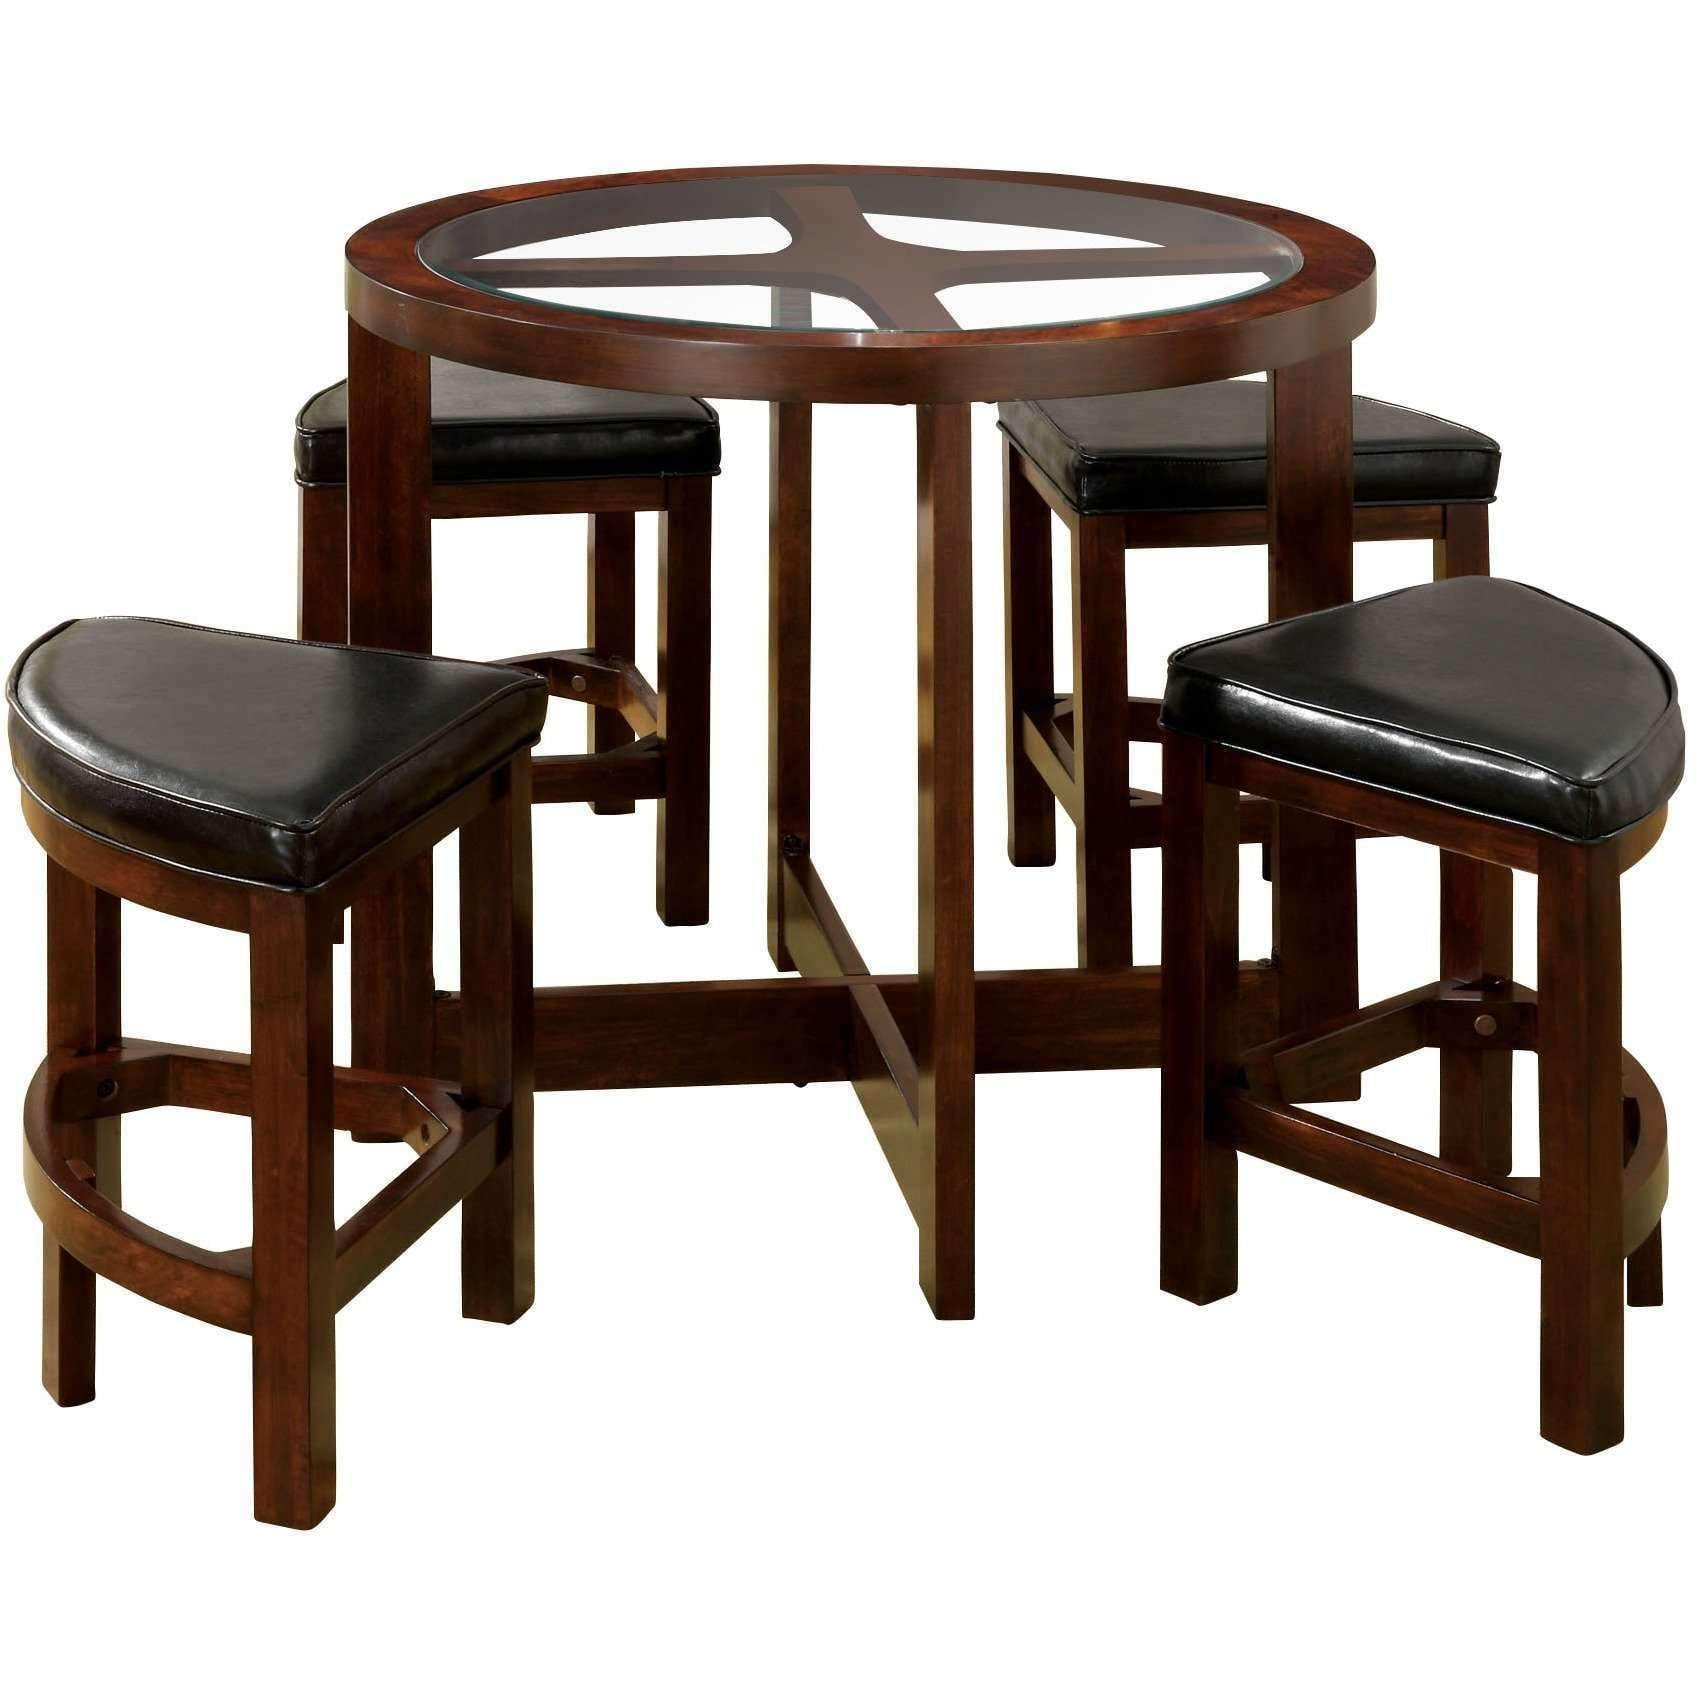 Furniture of America Lexi 5 piece Bar Table Set-Furniture of America-Happy Home Bars